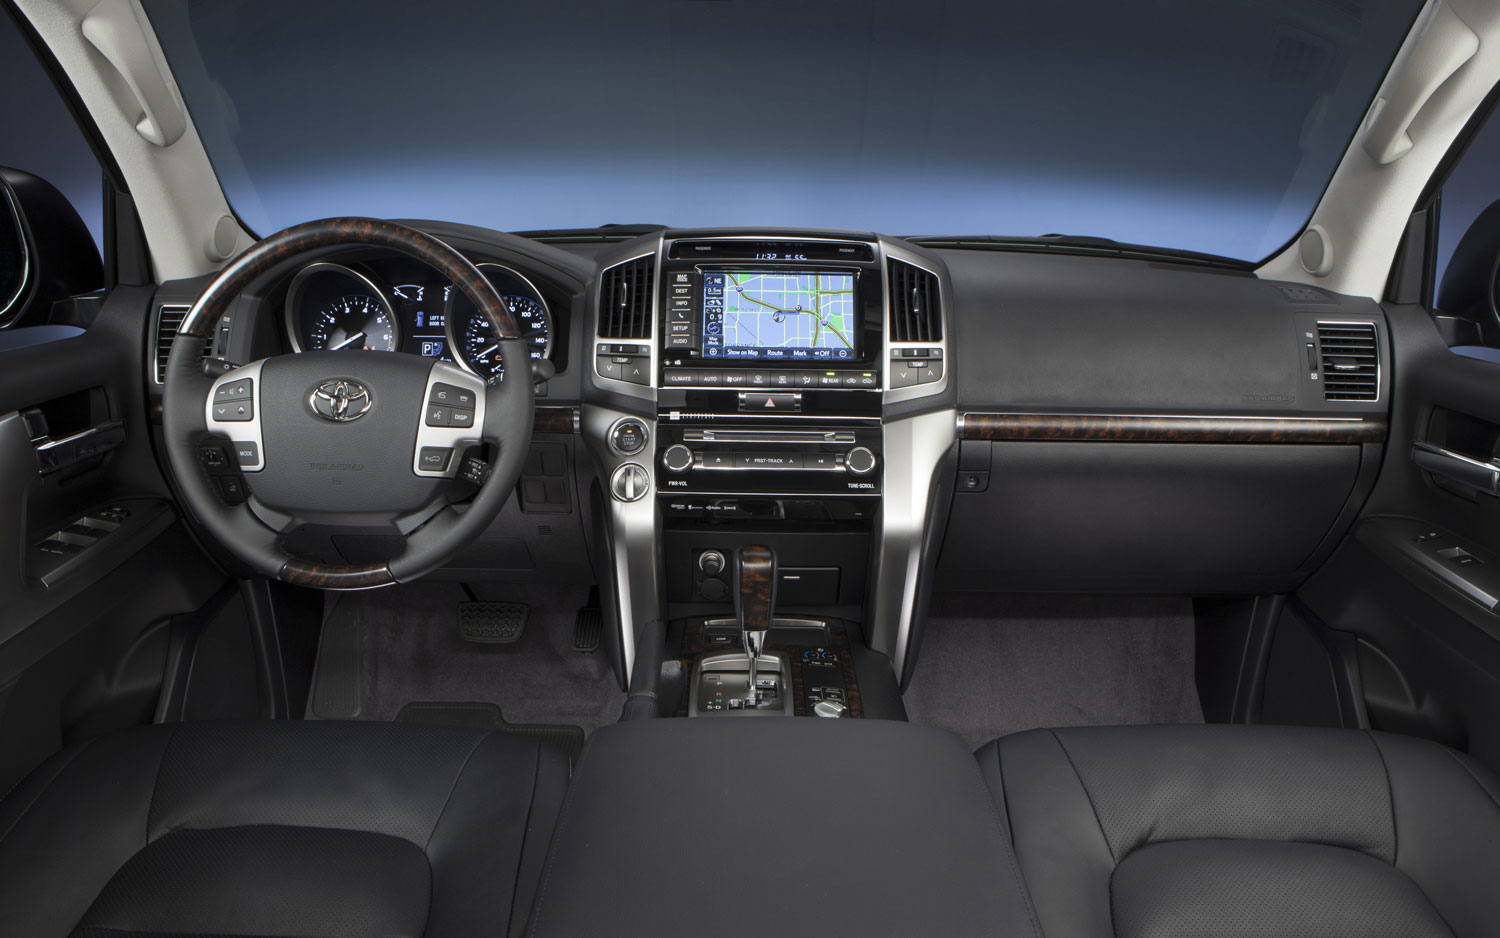 2013 Toyota Land Cruiser Dashboard